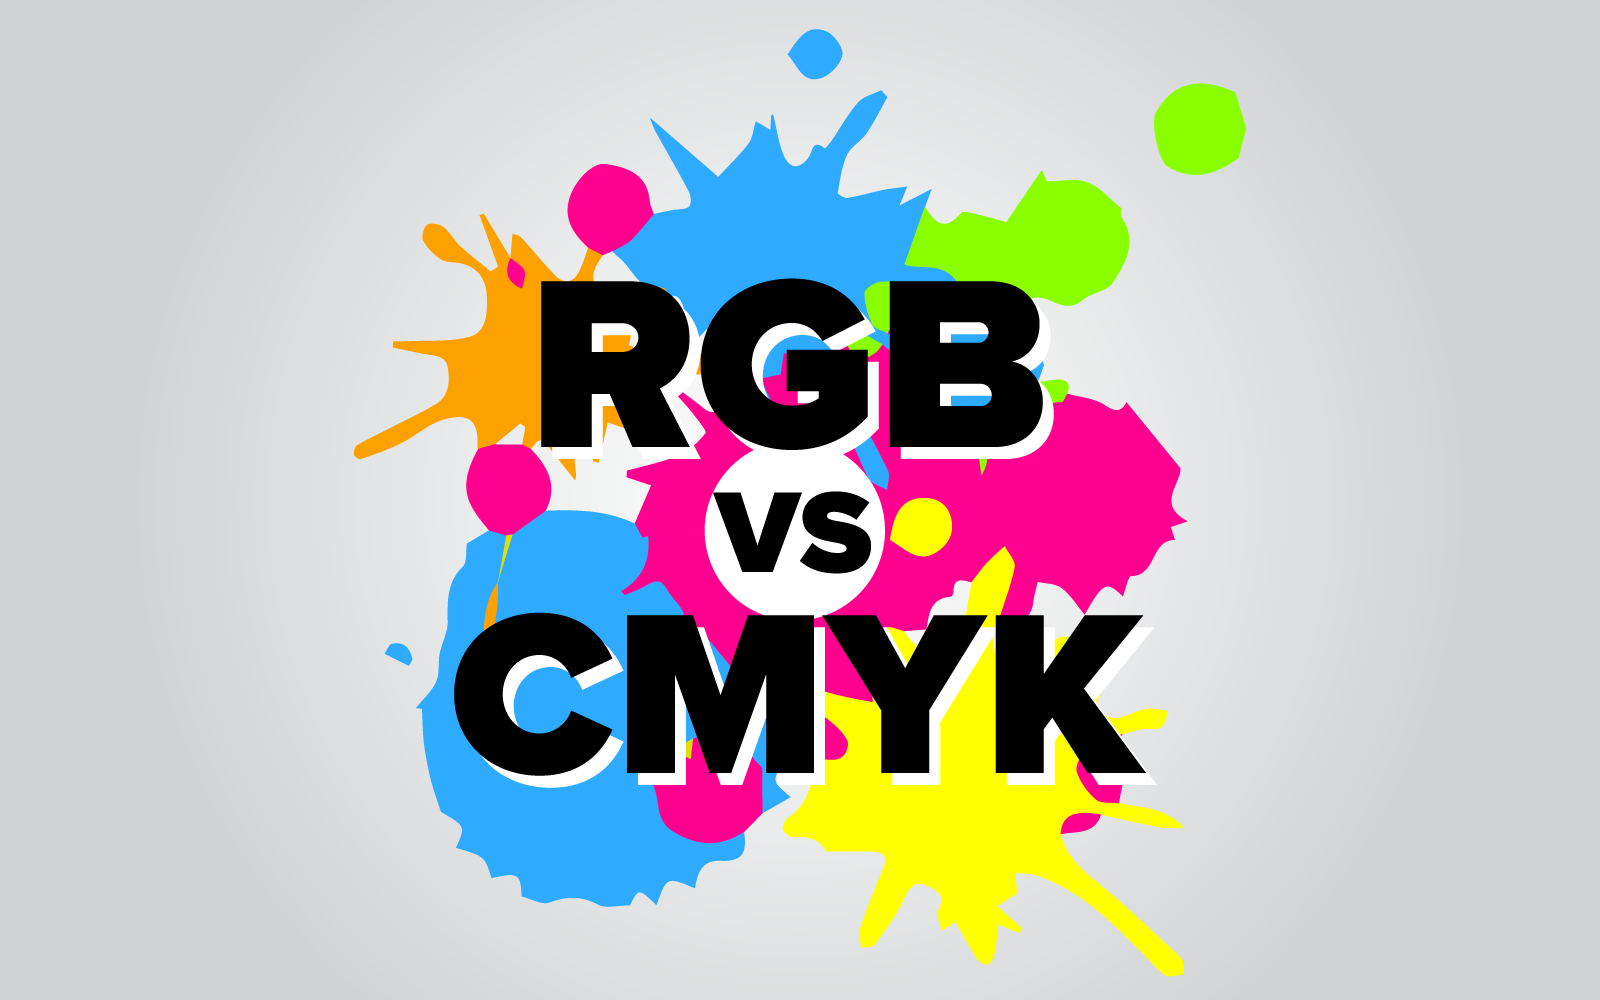 RGB or CMYK – What is the difference? When should you use them?